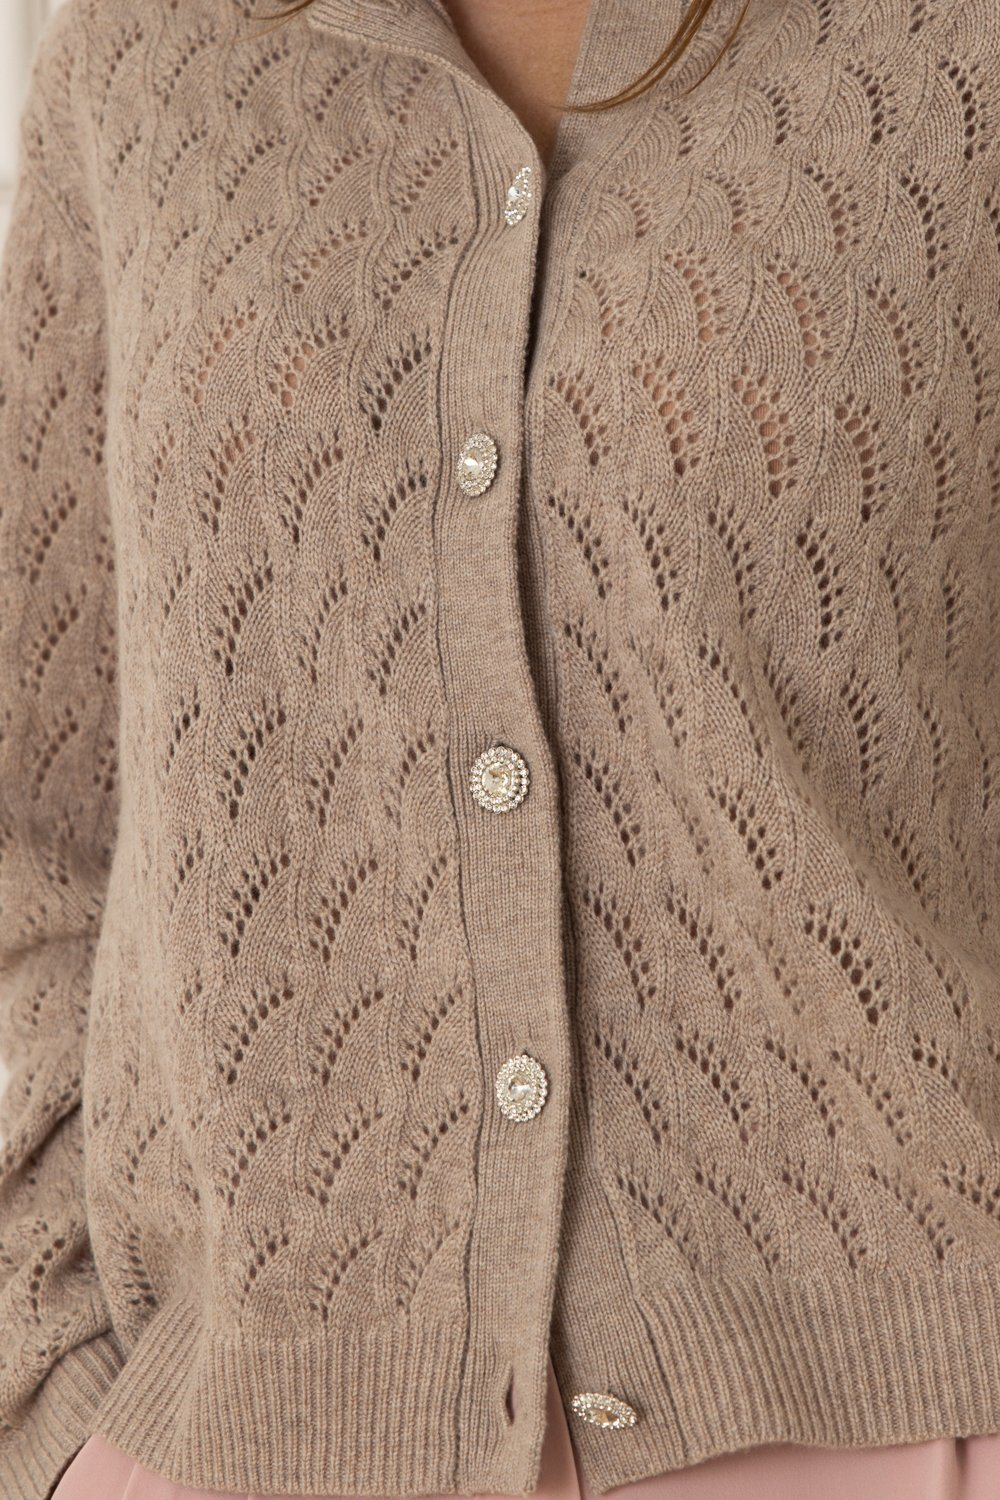 Lotus Cashmere/Wool Cardigan - Stone Brown